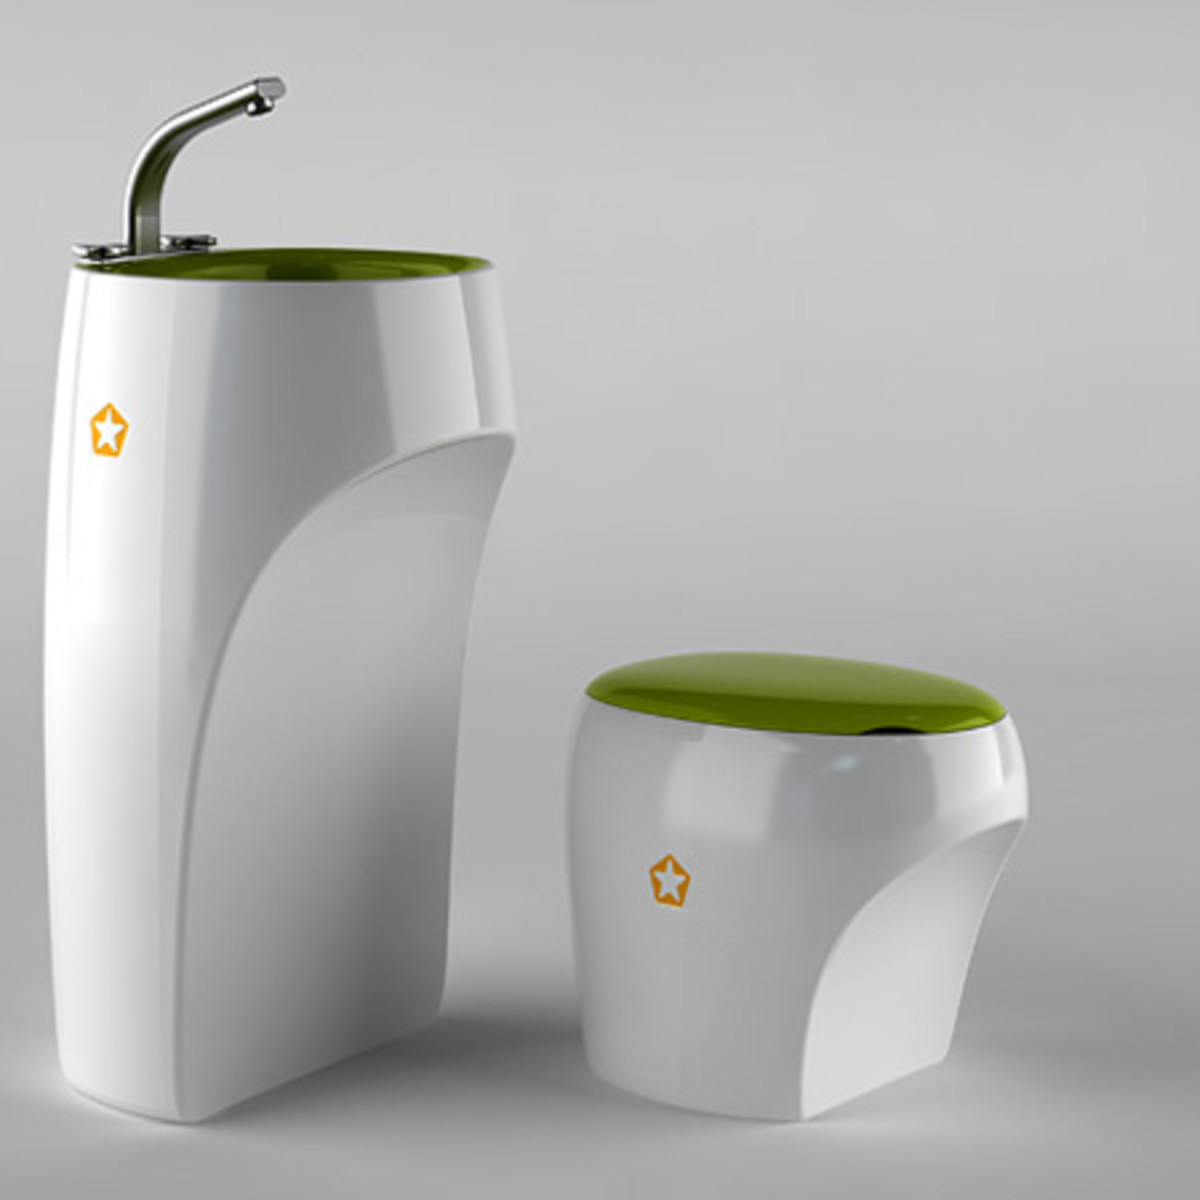 A beautiful white bathroom set can harbor bacteria